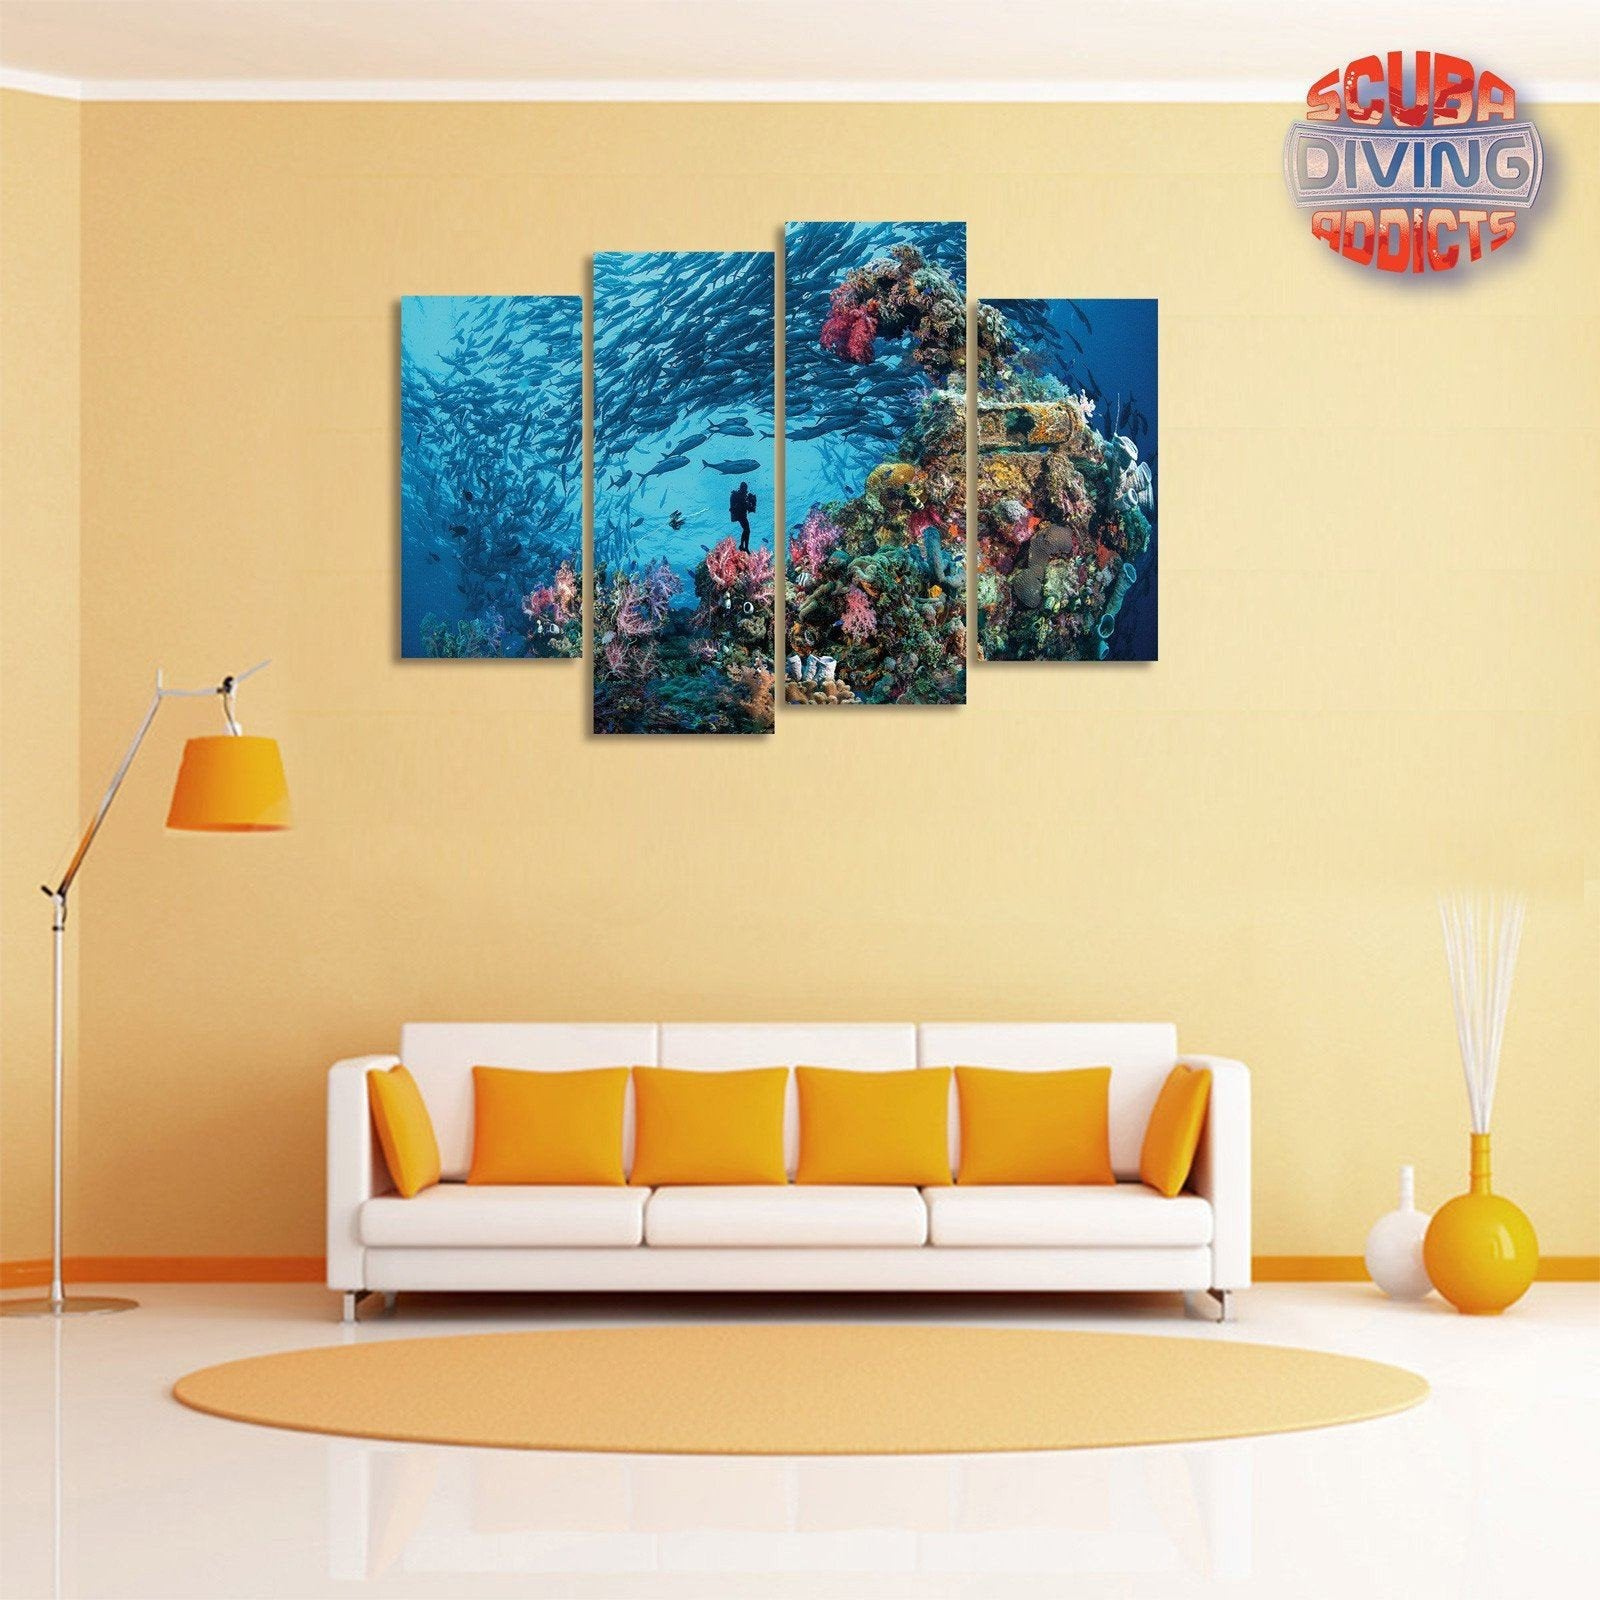 Underwater Explorer 4 Piece Canvas – scubadivingaddicts